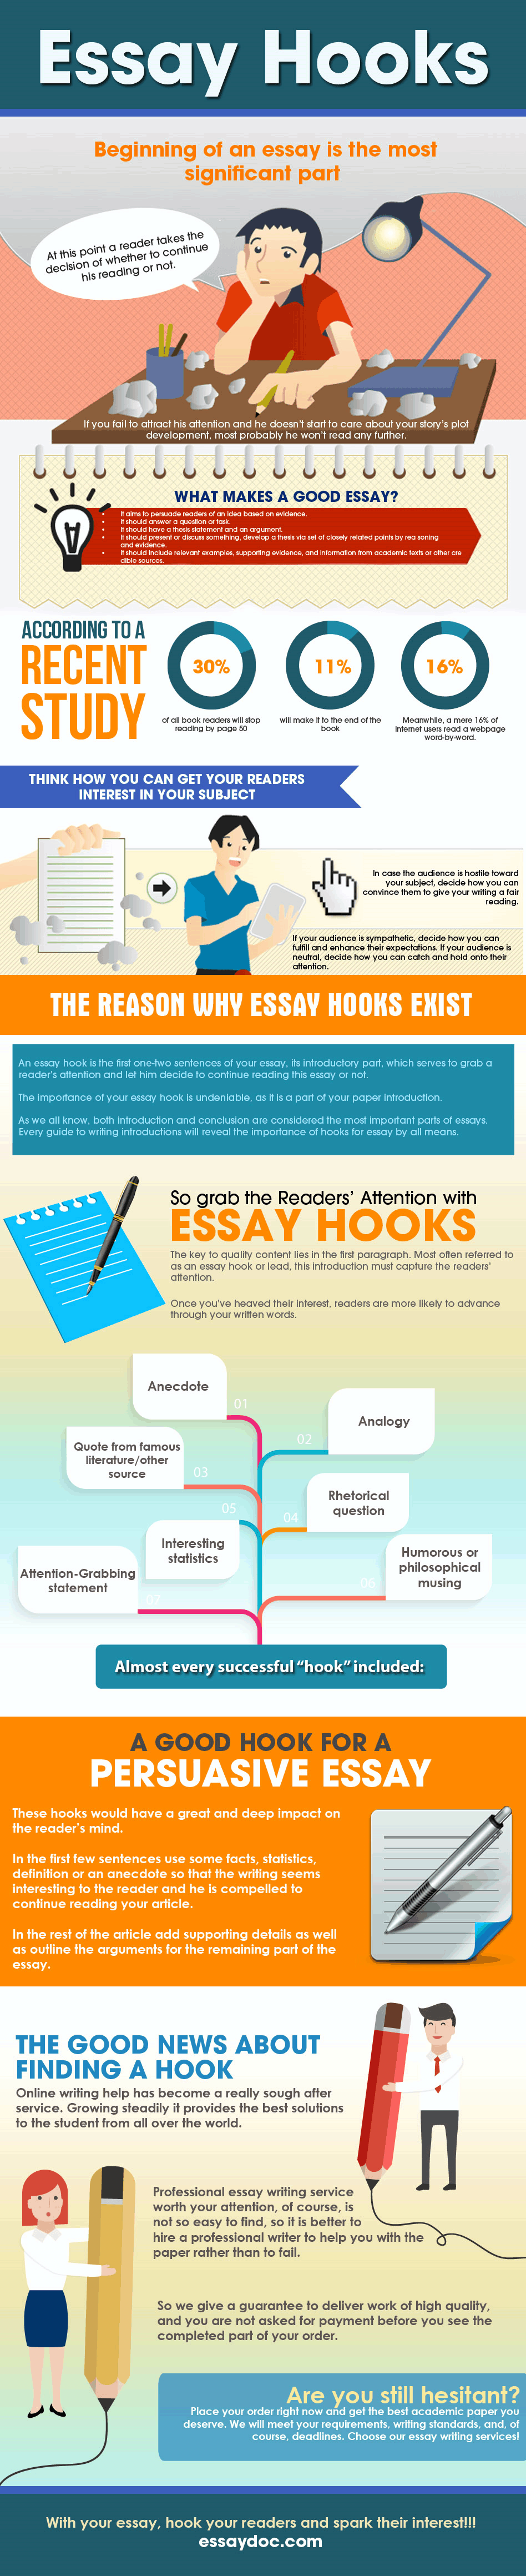 why is gatsby great essay cover letter great essay examples great  critical essay gatsby great materialism com critical essay gatsby great materialism